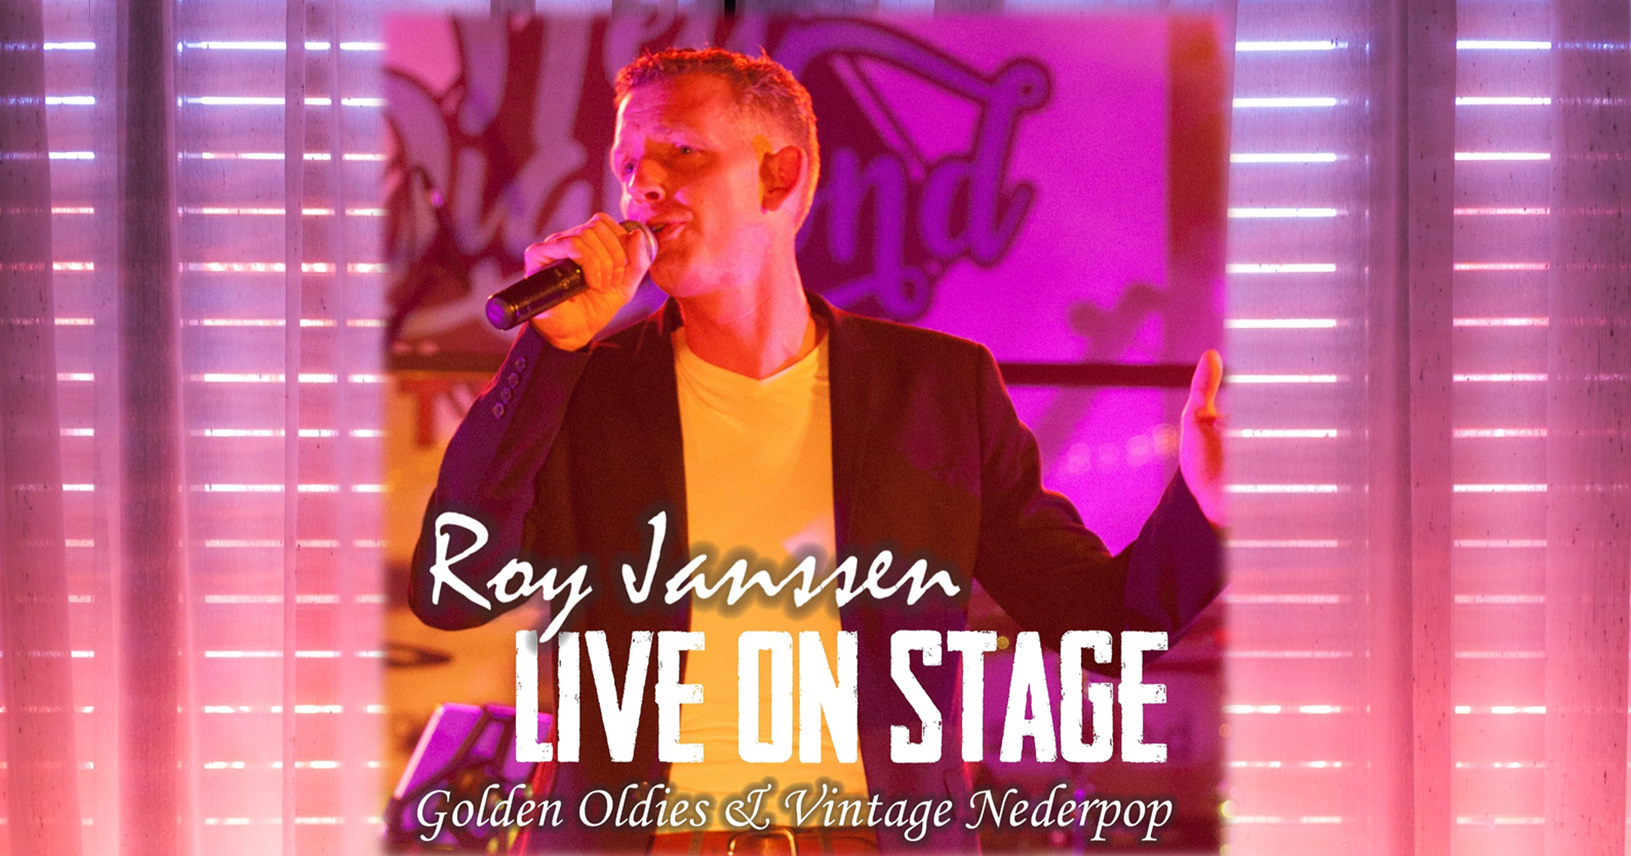 MDD Asten 2019 - Live on Stage Ready to rock met Roy Janssen • 21-04-2019